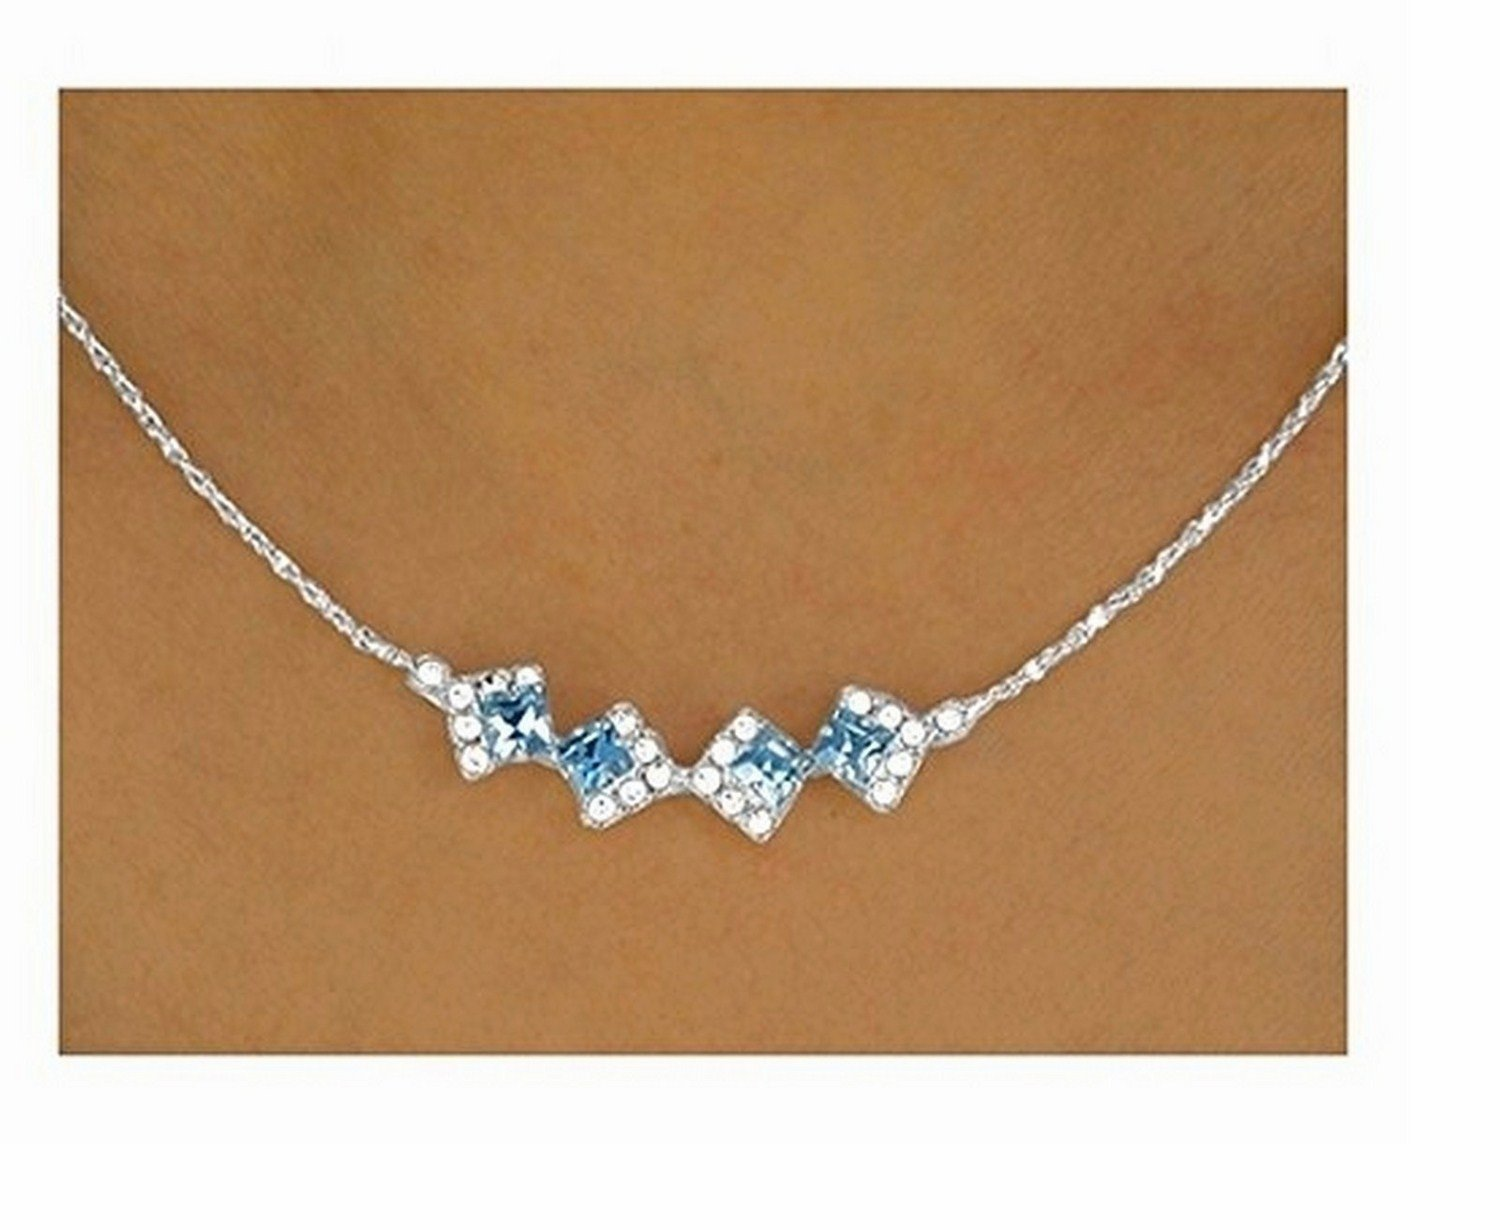 Glittering & Genuine Sapphire Blue Austrian Crystal Necklace & Earring Set by Lonestar Jewelry